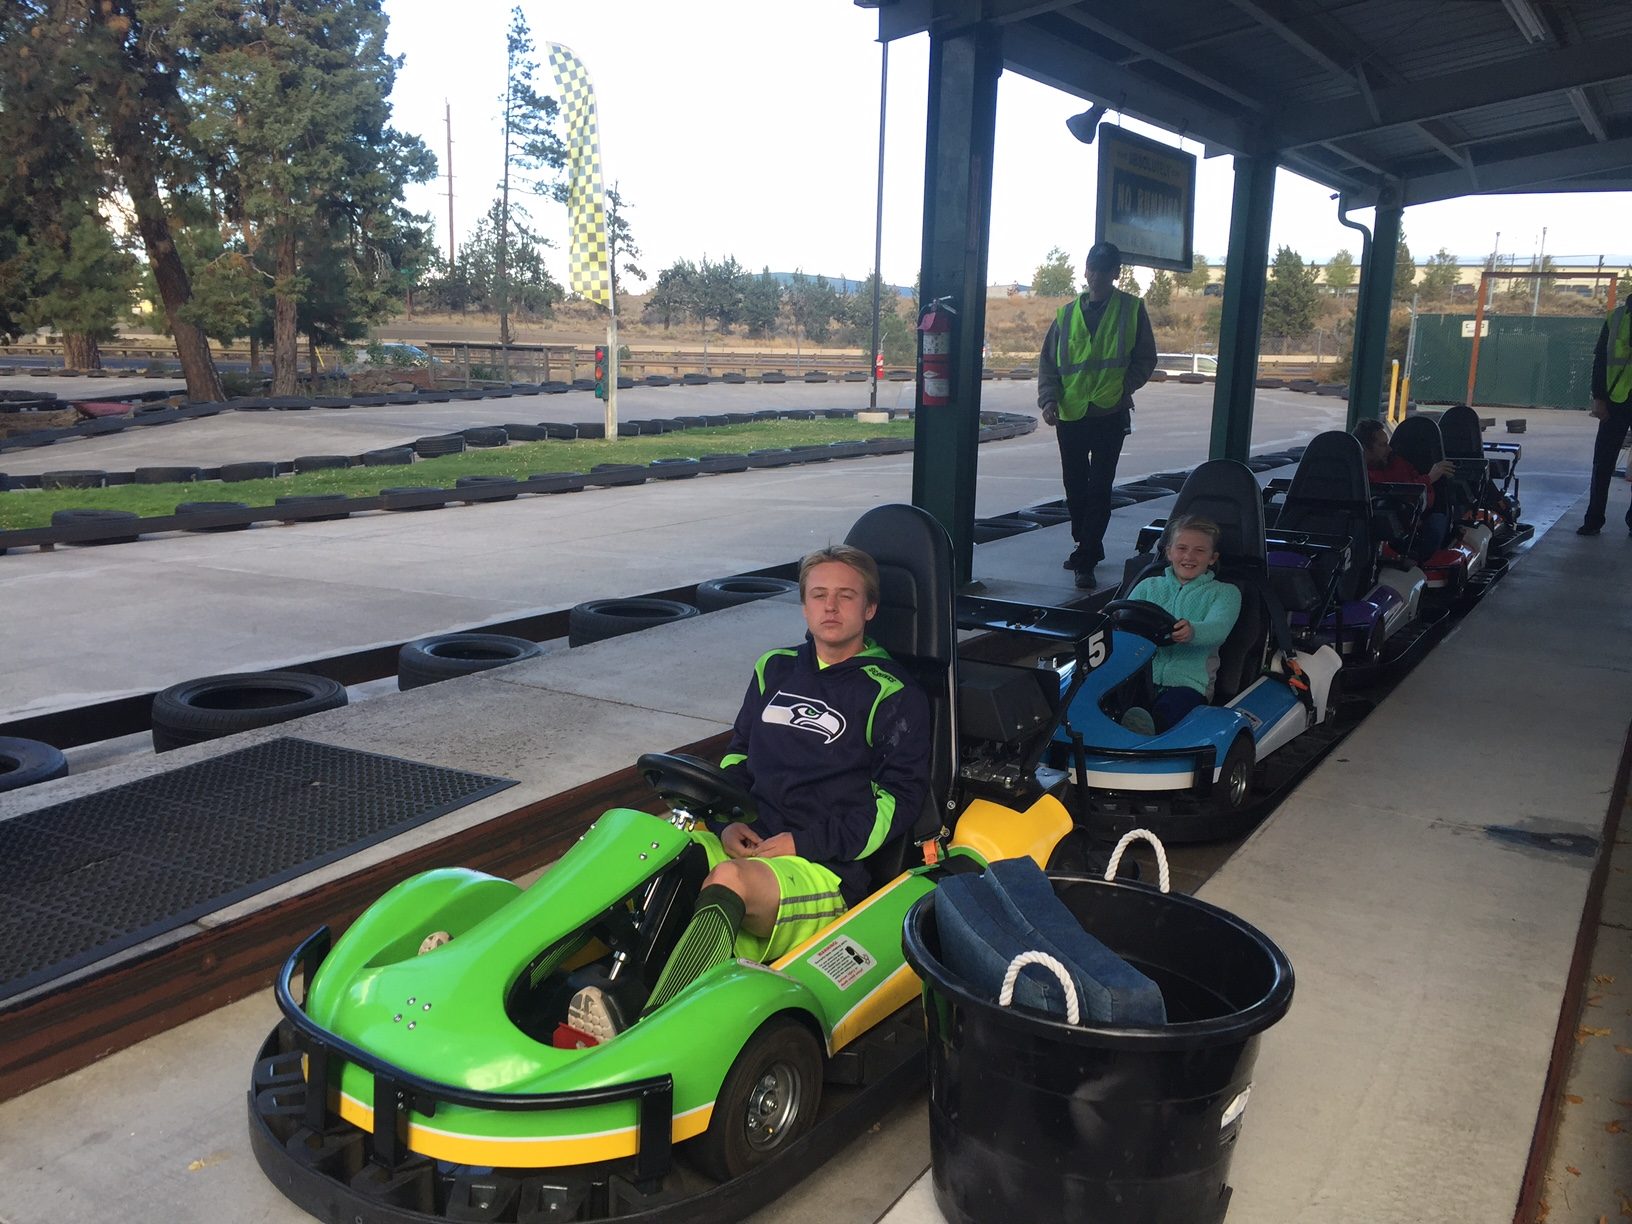 Blogger Tawna's family prepares to cruise in the go karts at Sun Mountain Fun Center.